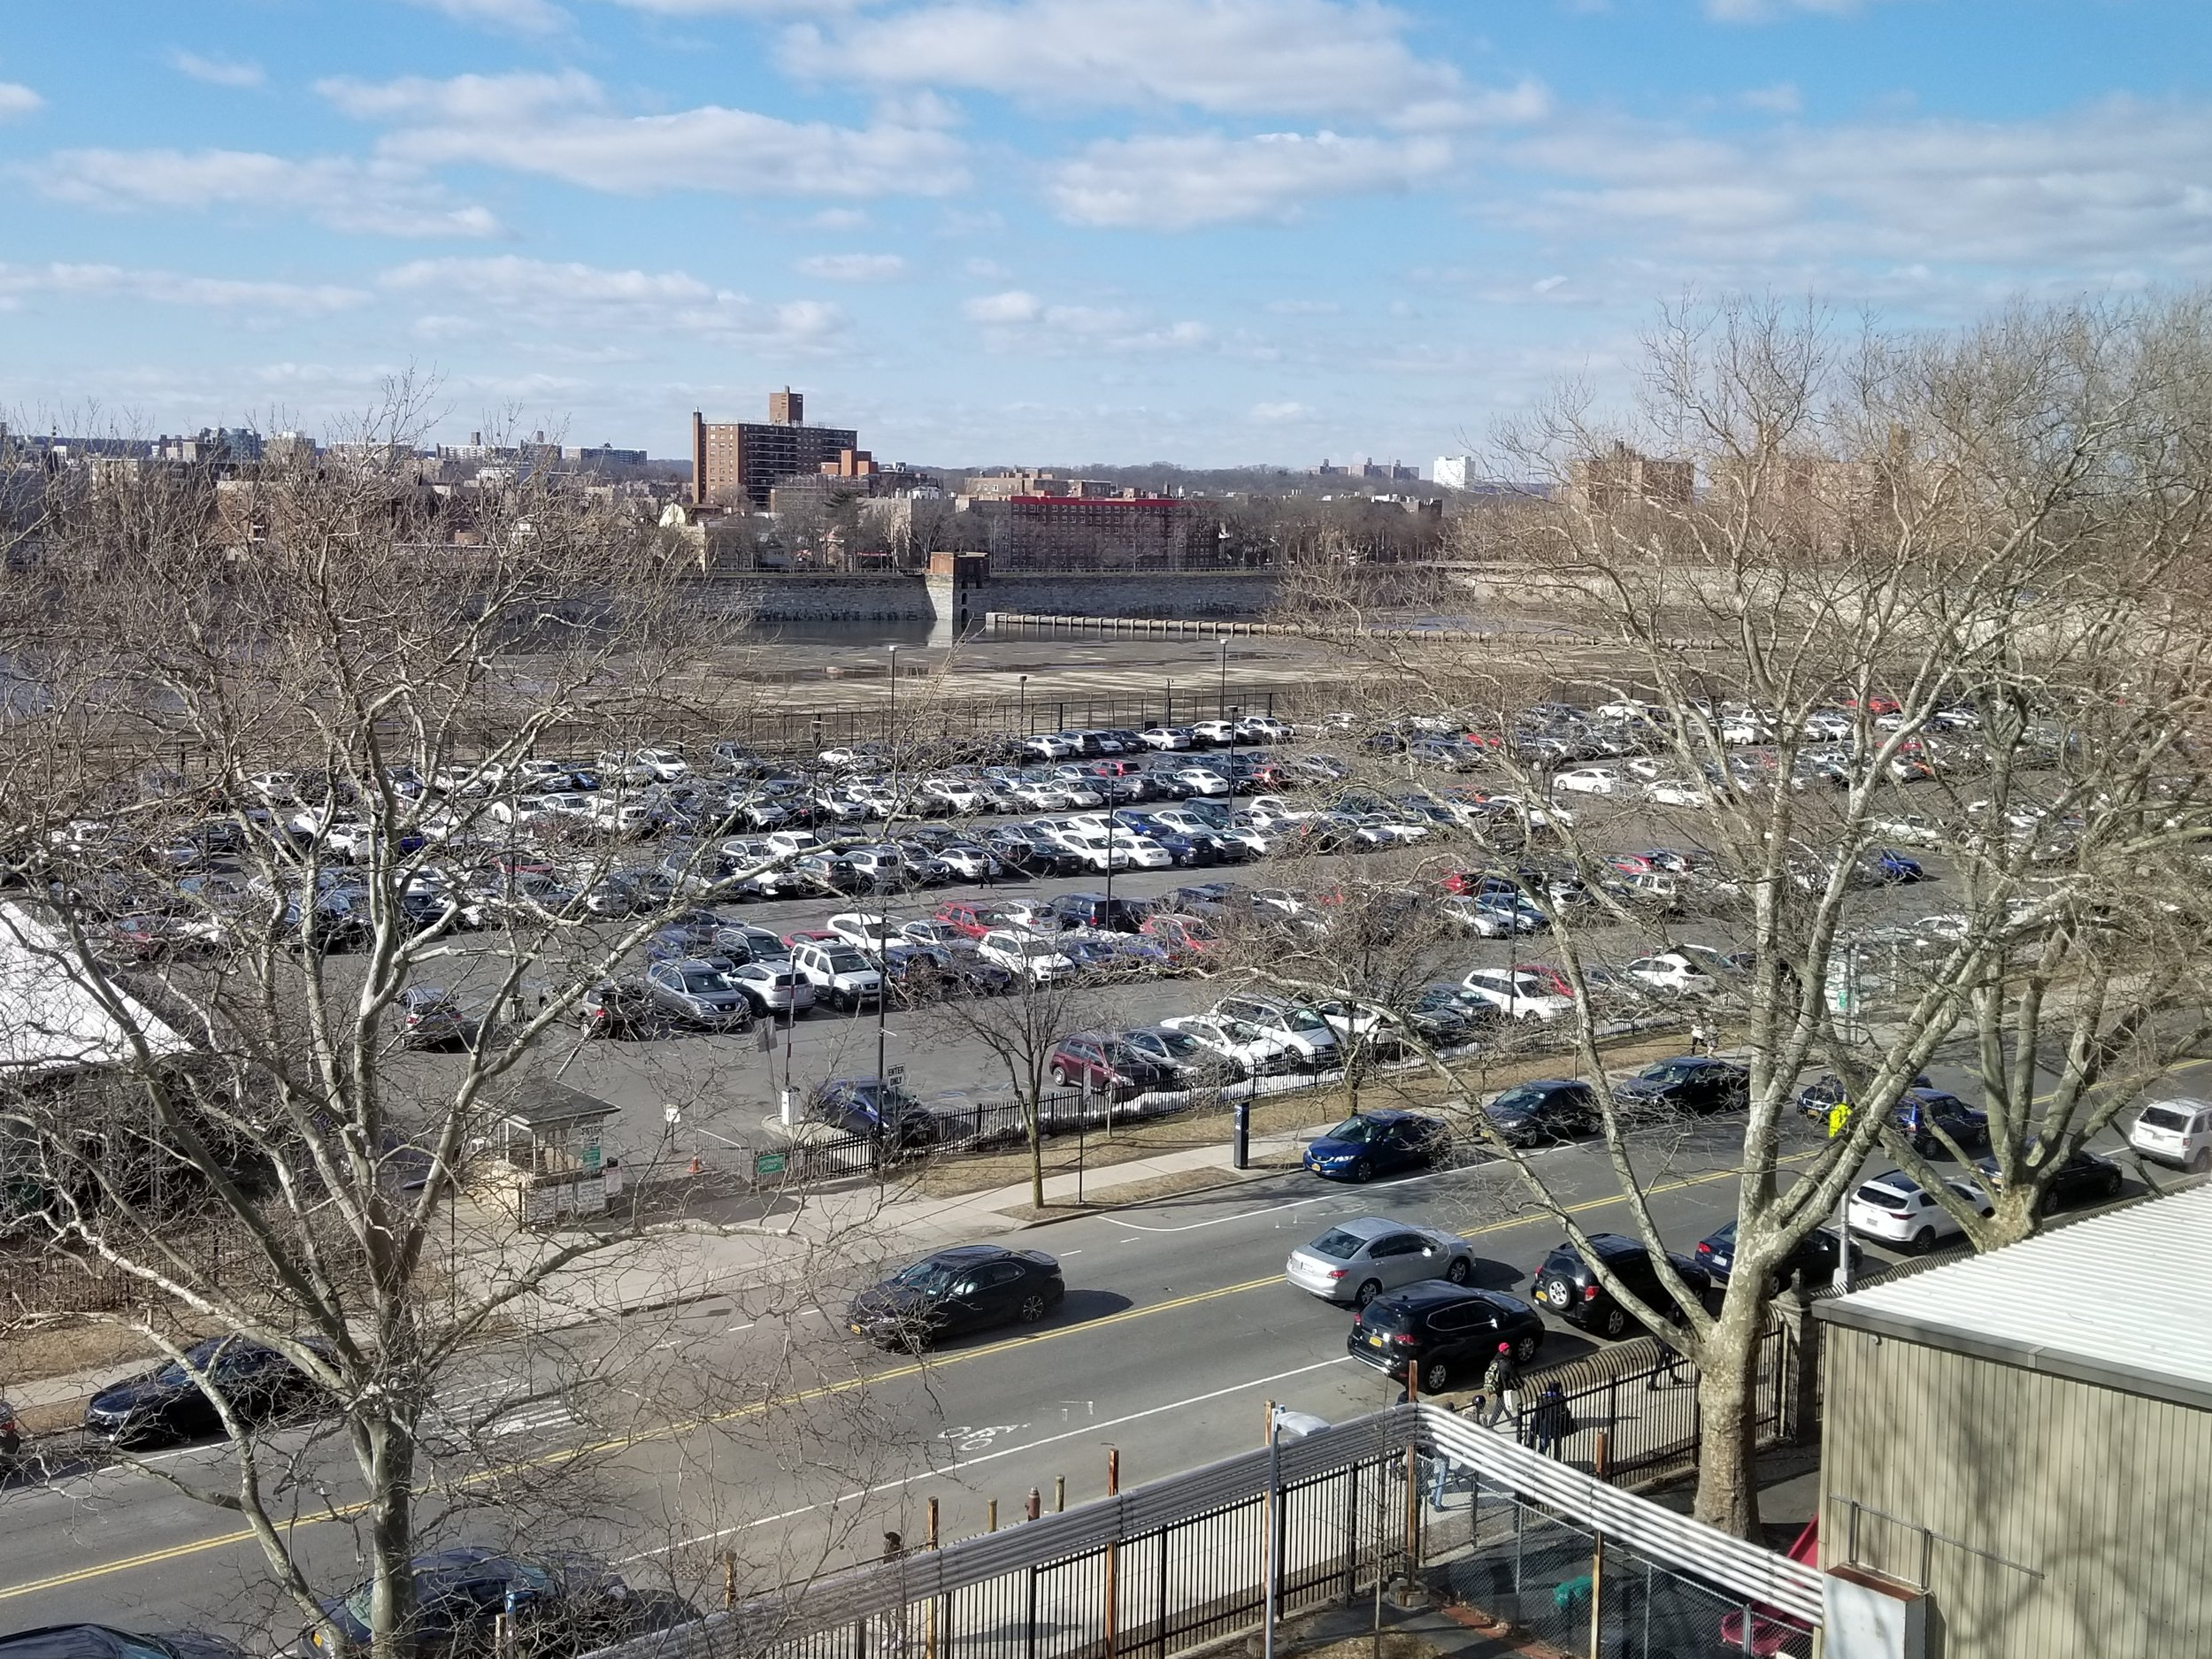 An overlook of the Lehman parking lot from the Science Building. Photo by Deanna Garcia.